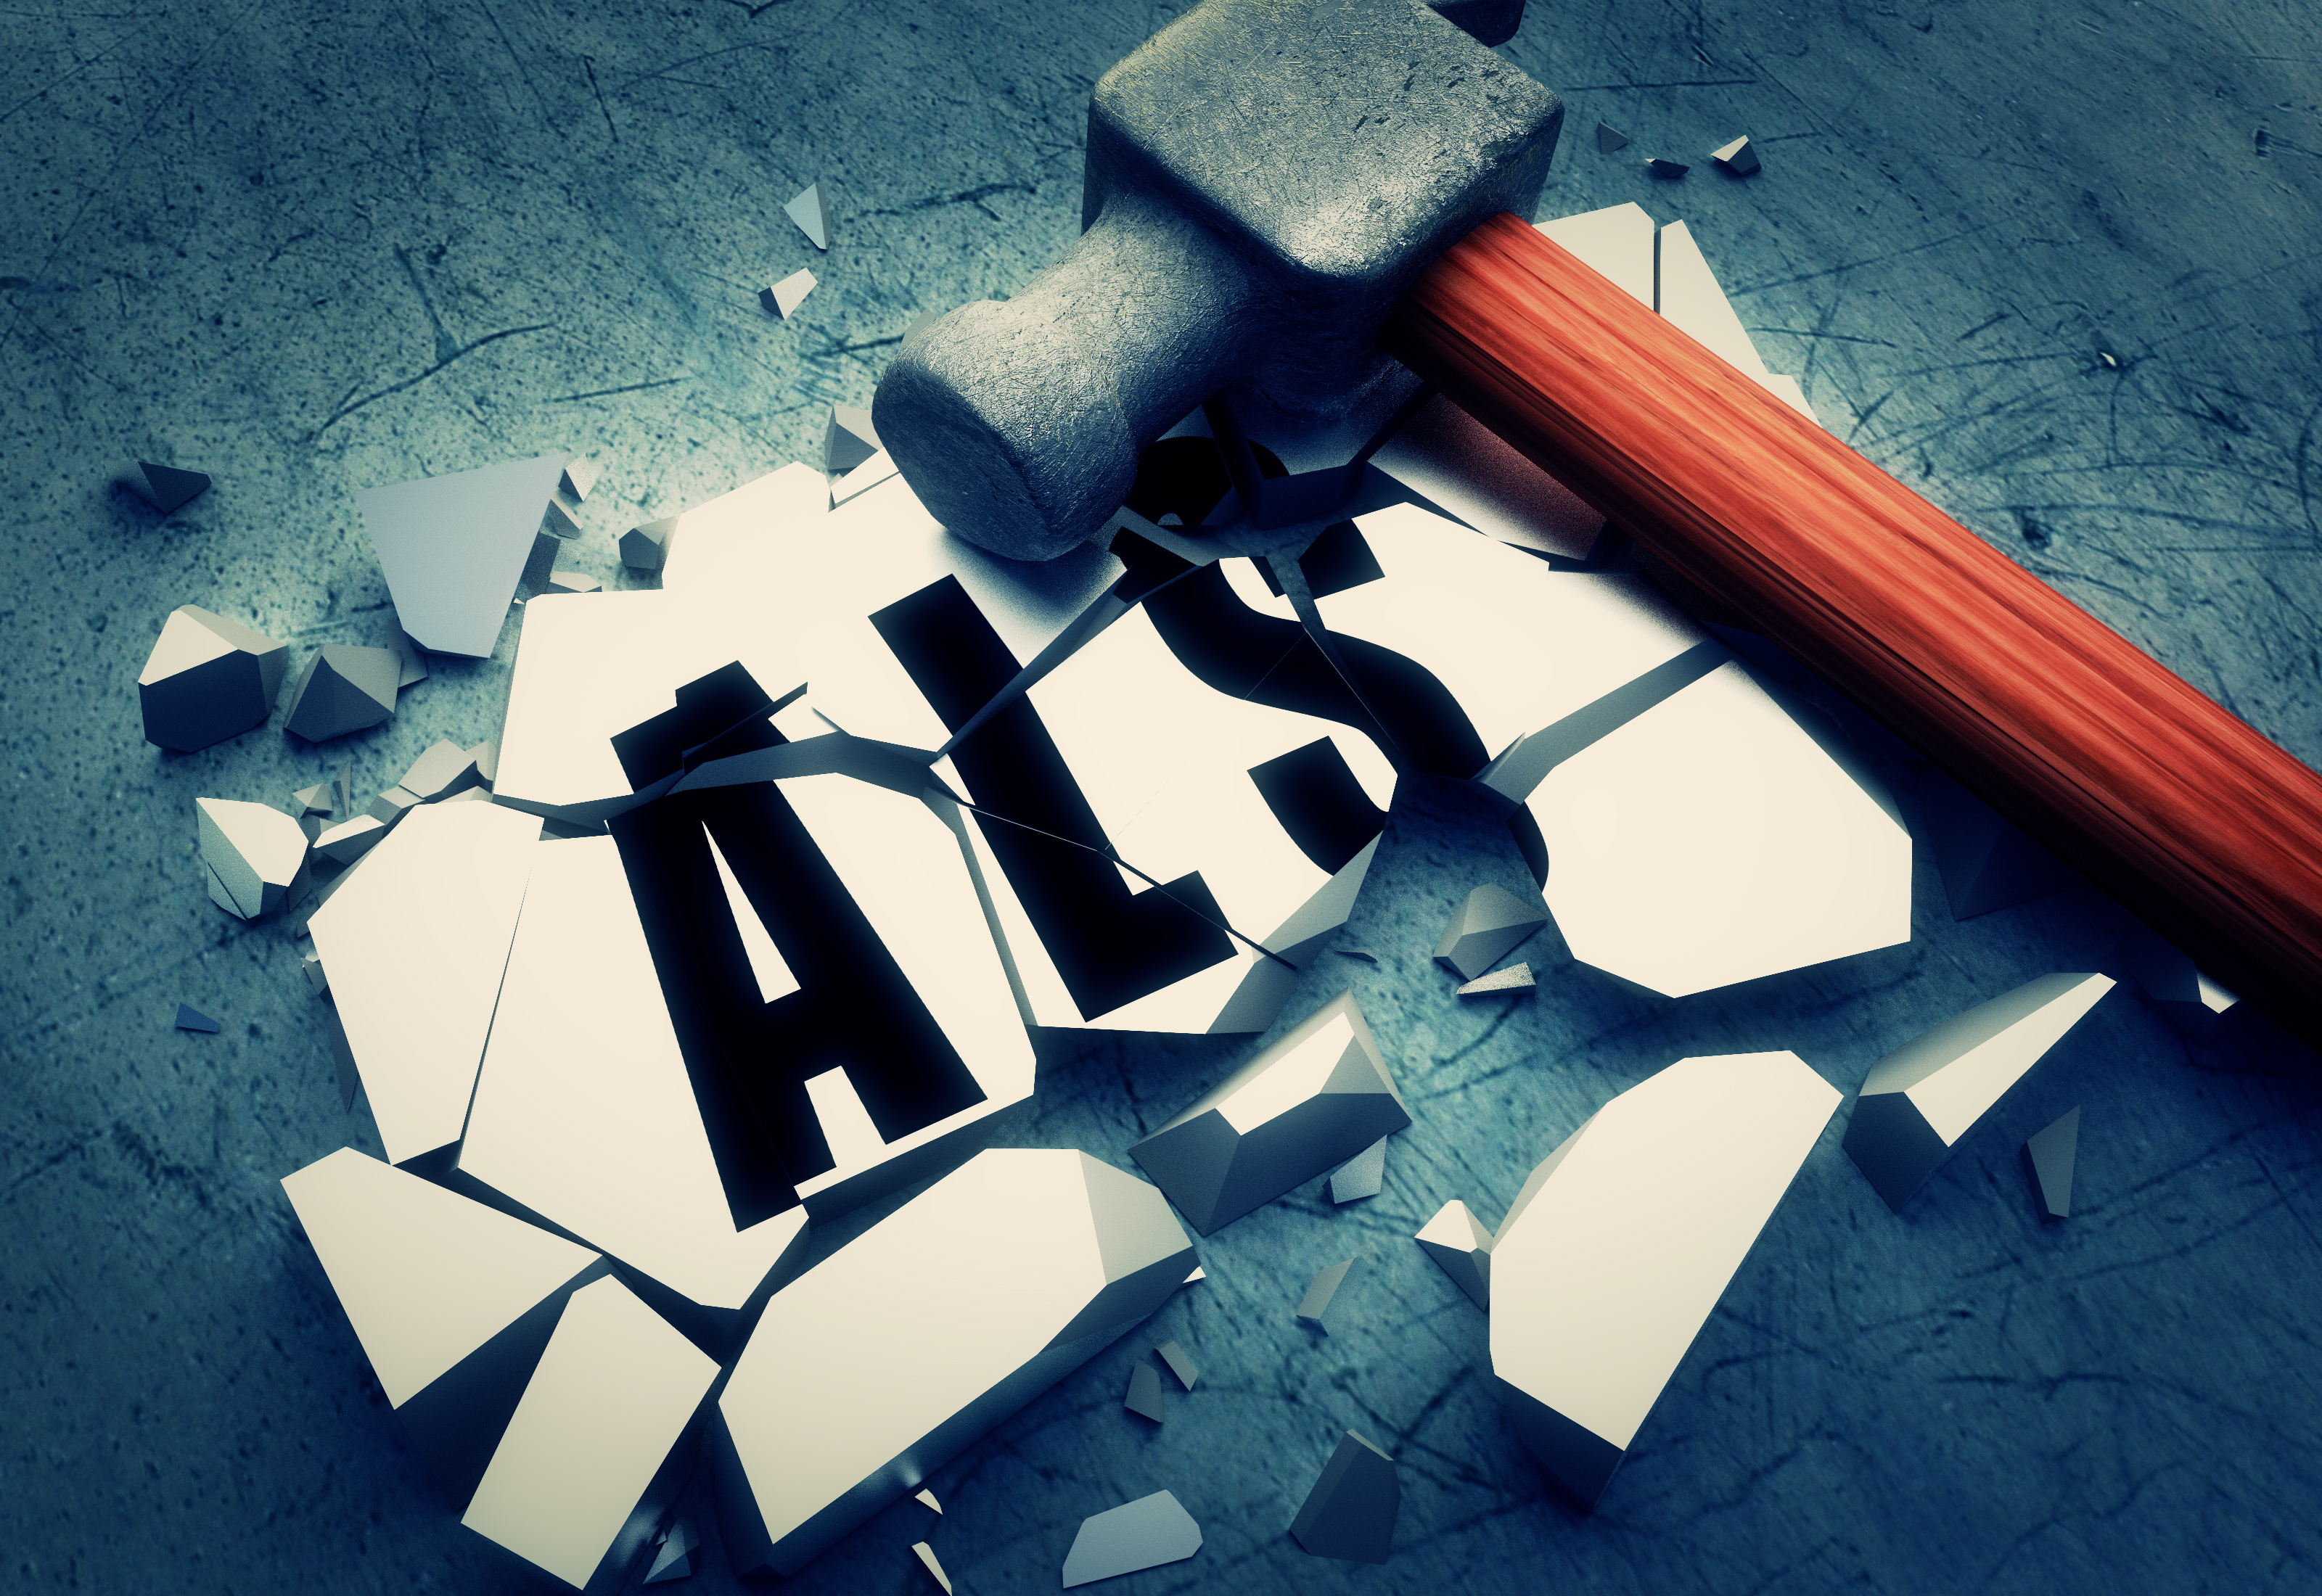 22 Diseases that Mimic ALS Symptoms, Can Lead to Misdiagnosis